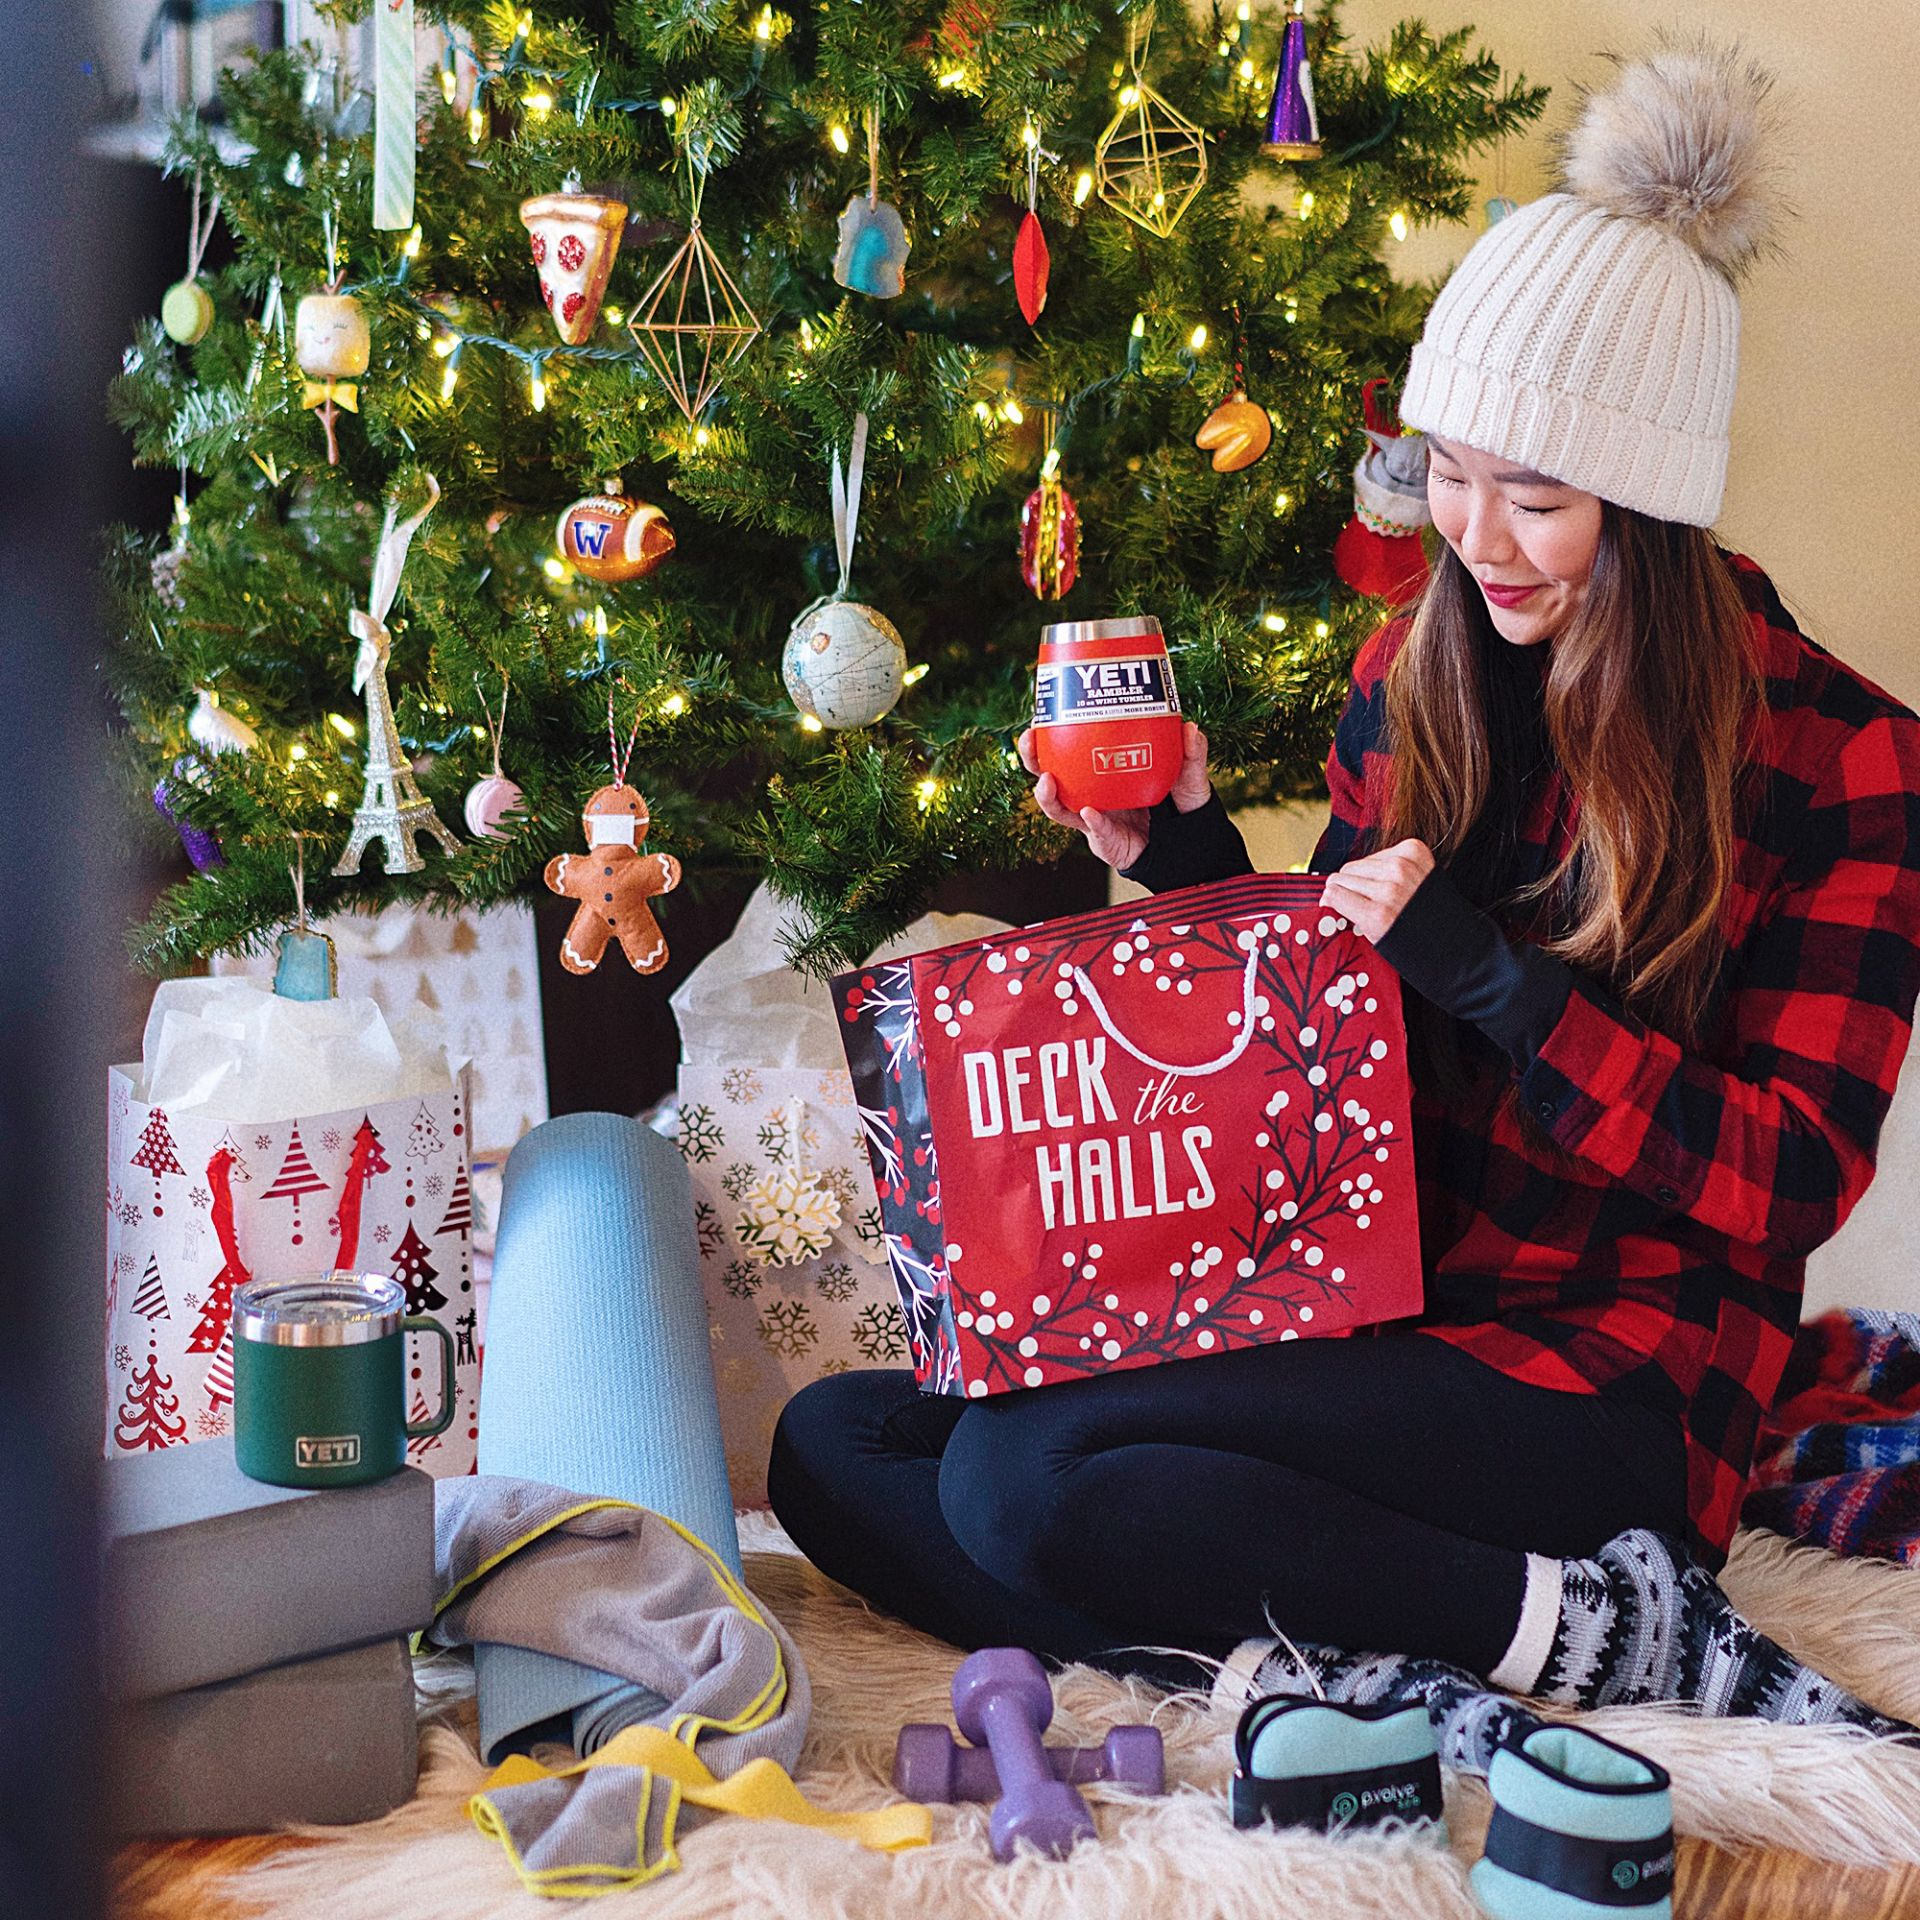 2020 holiday gift guide workout fitness athleisure stay at home activewear Yeti beanie plaid flannel home gym yoga weights women men